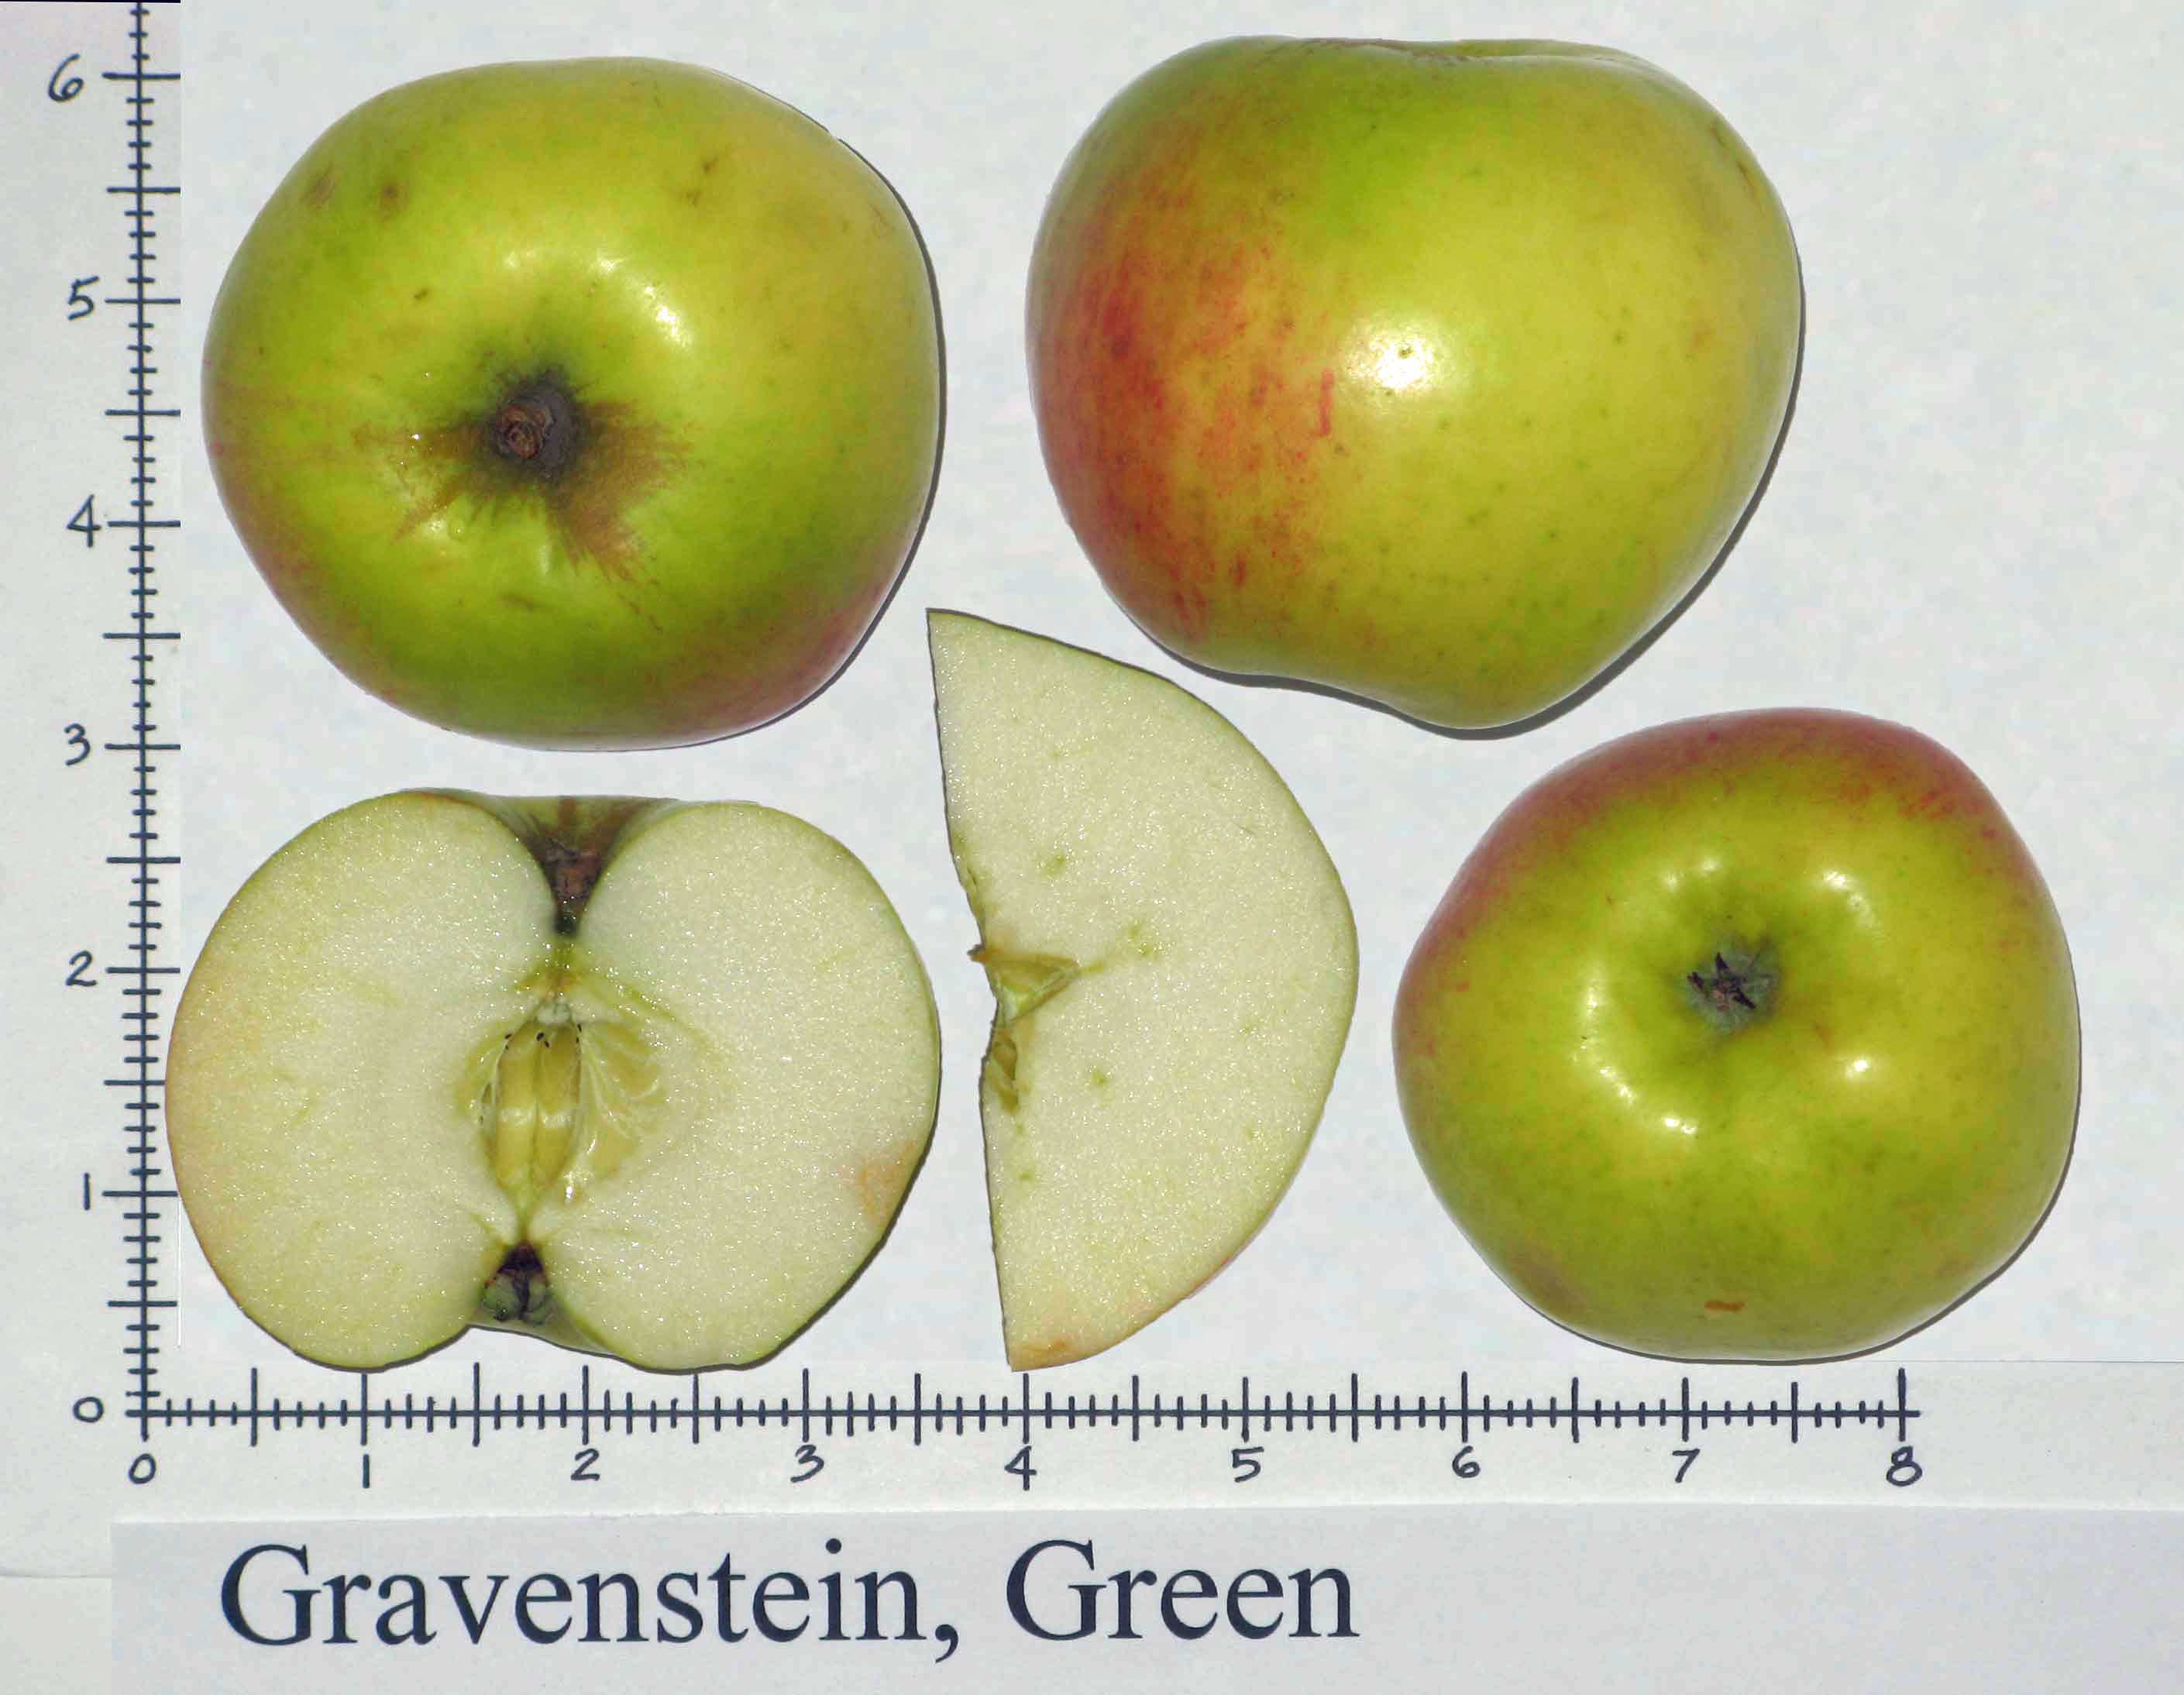 Gravenstein, Green